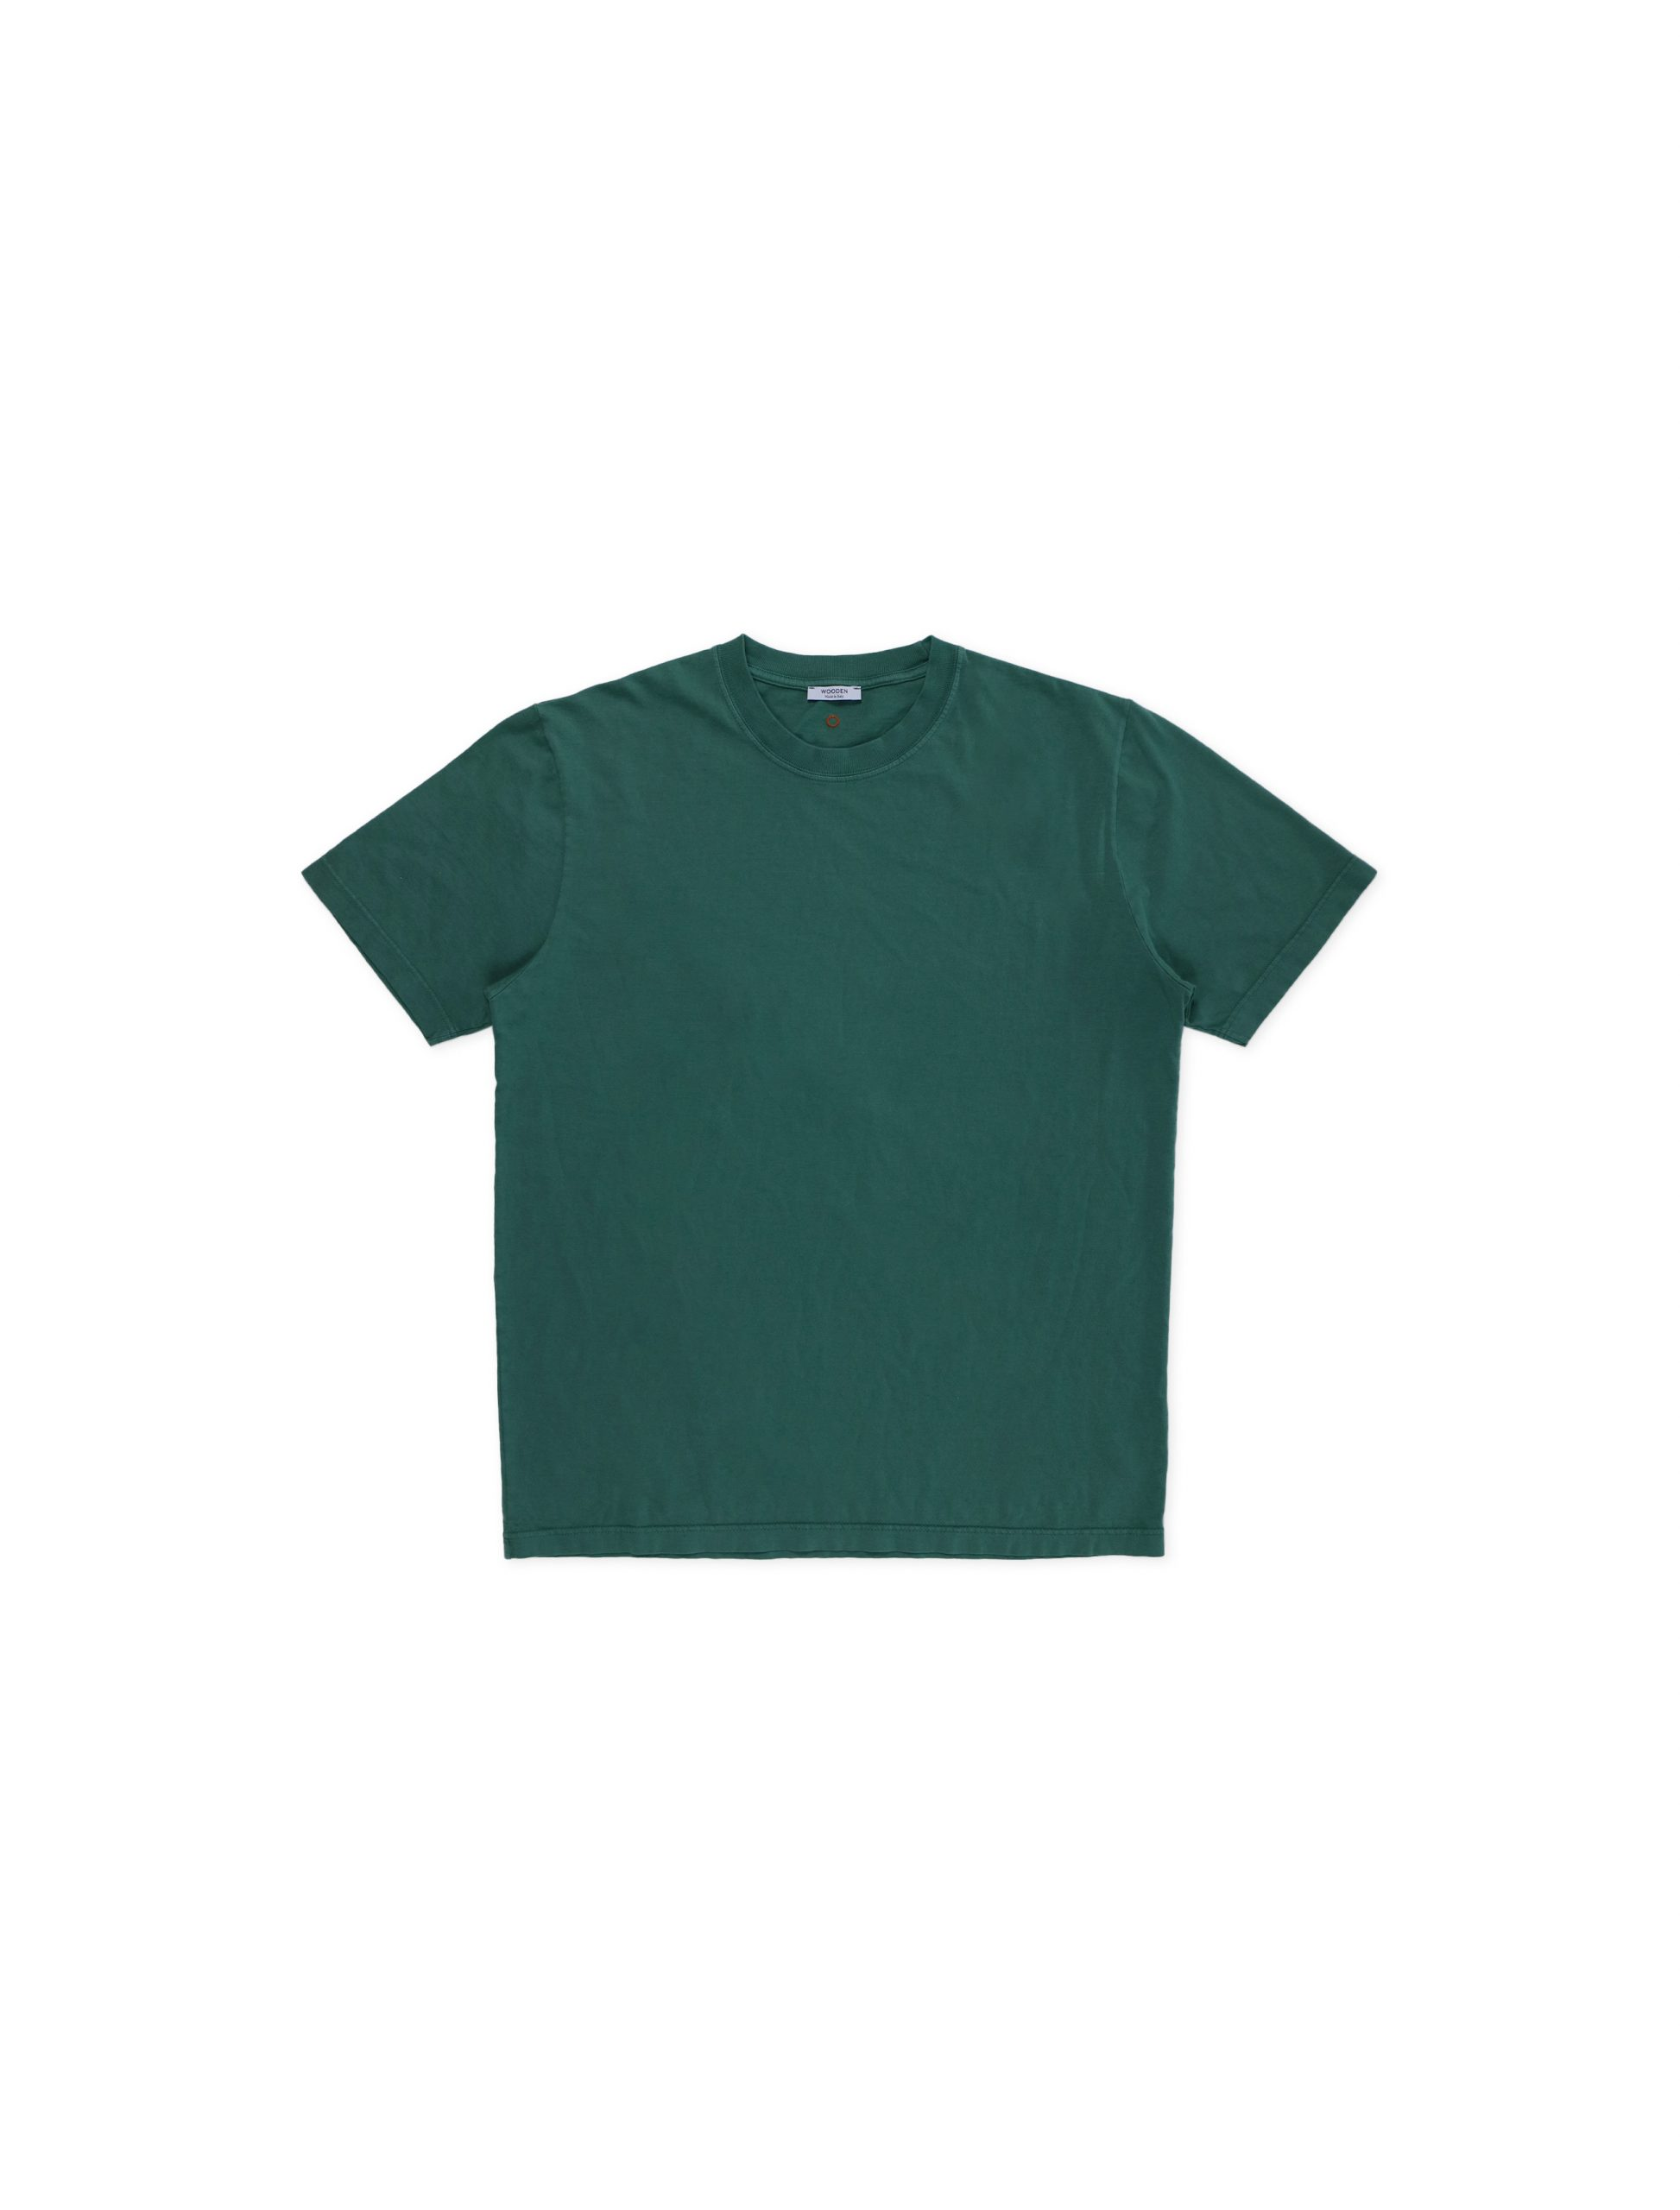 T-Shirt Blue Spruce | Wooden Store